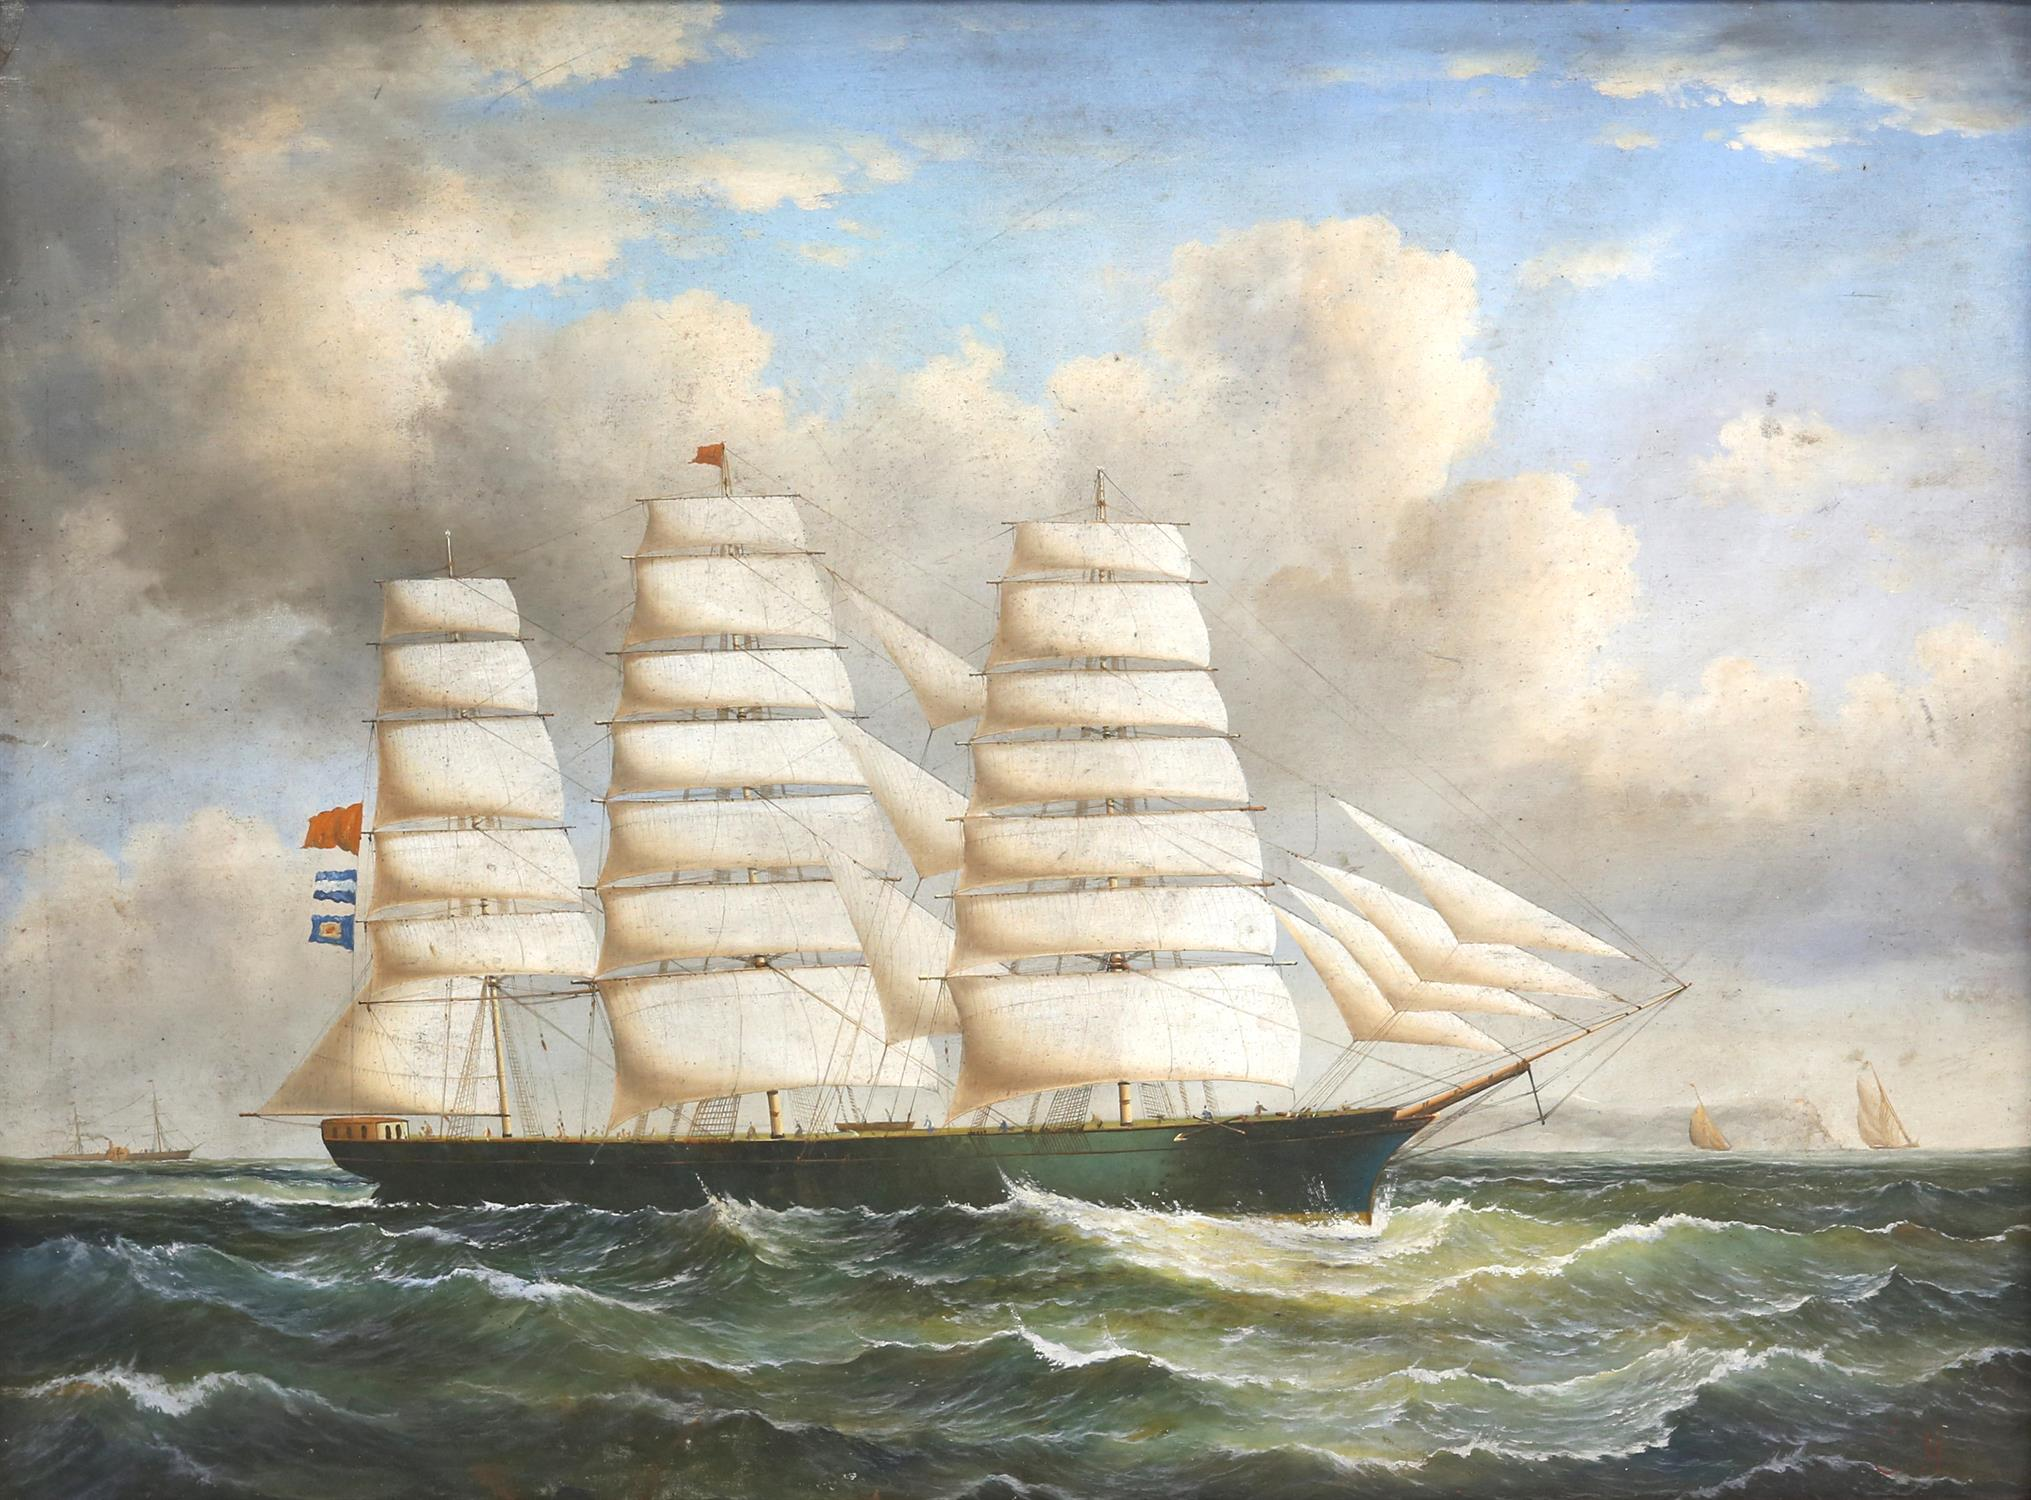 Attributed to George Mears (British, 1826-1906). Sailing ship in a swell. Initialled G M lower